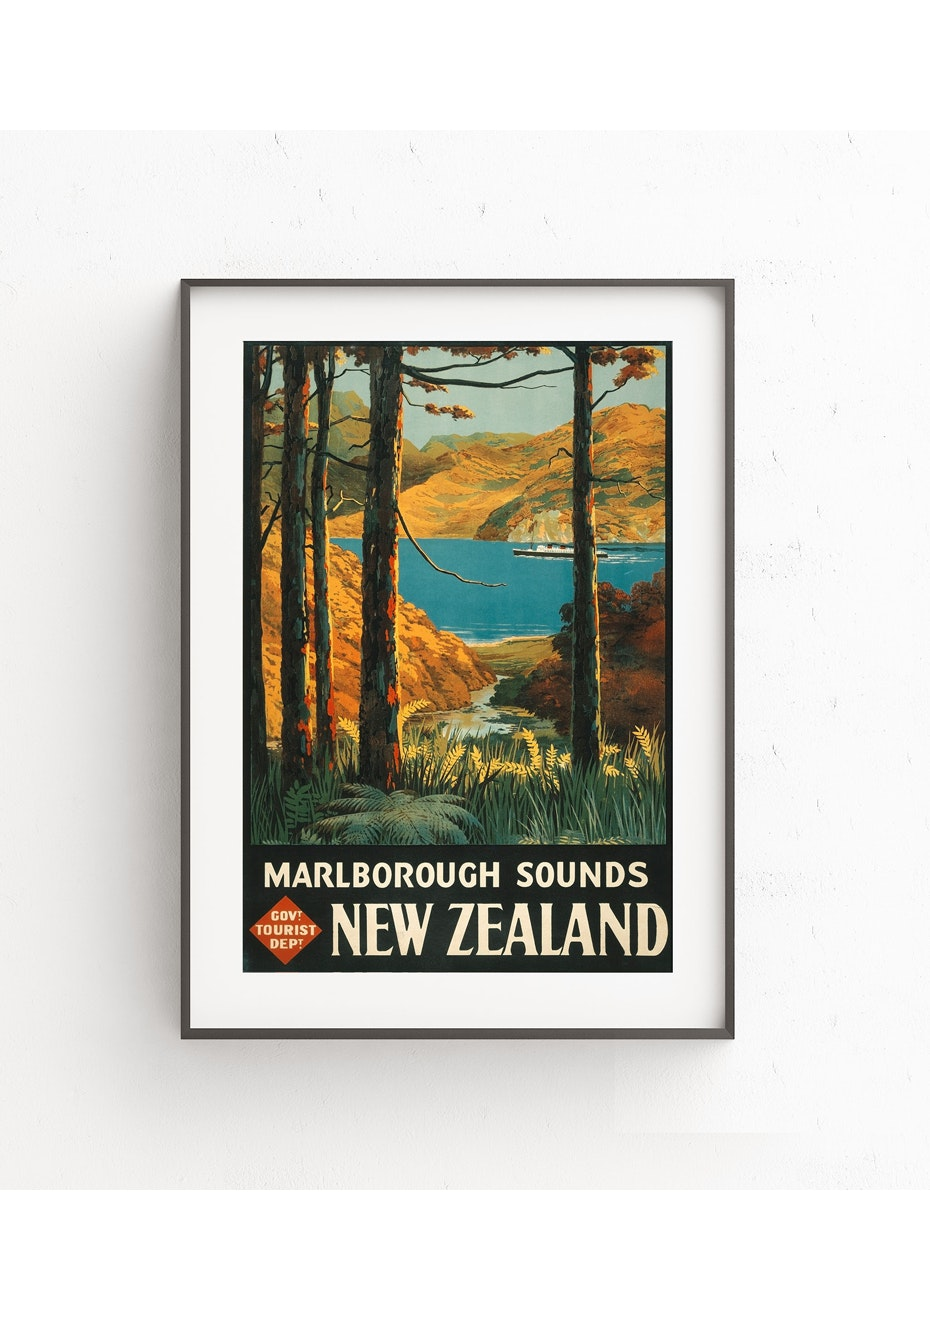 Marlborough Sounds Vintage Tourist Print - A2